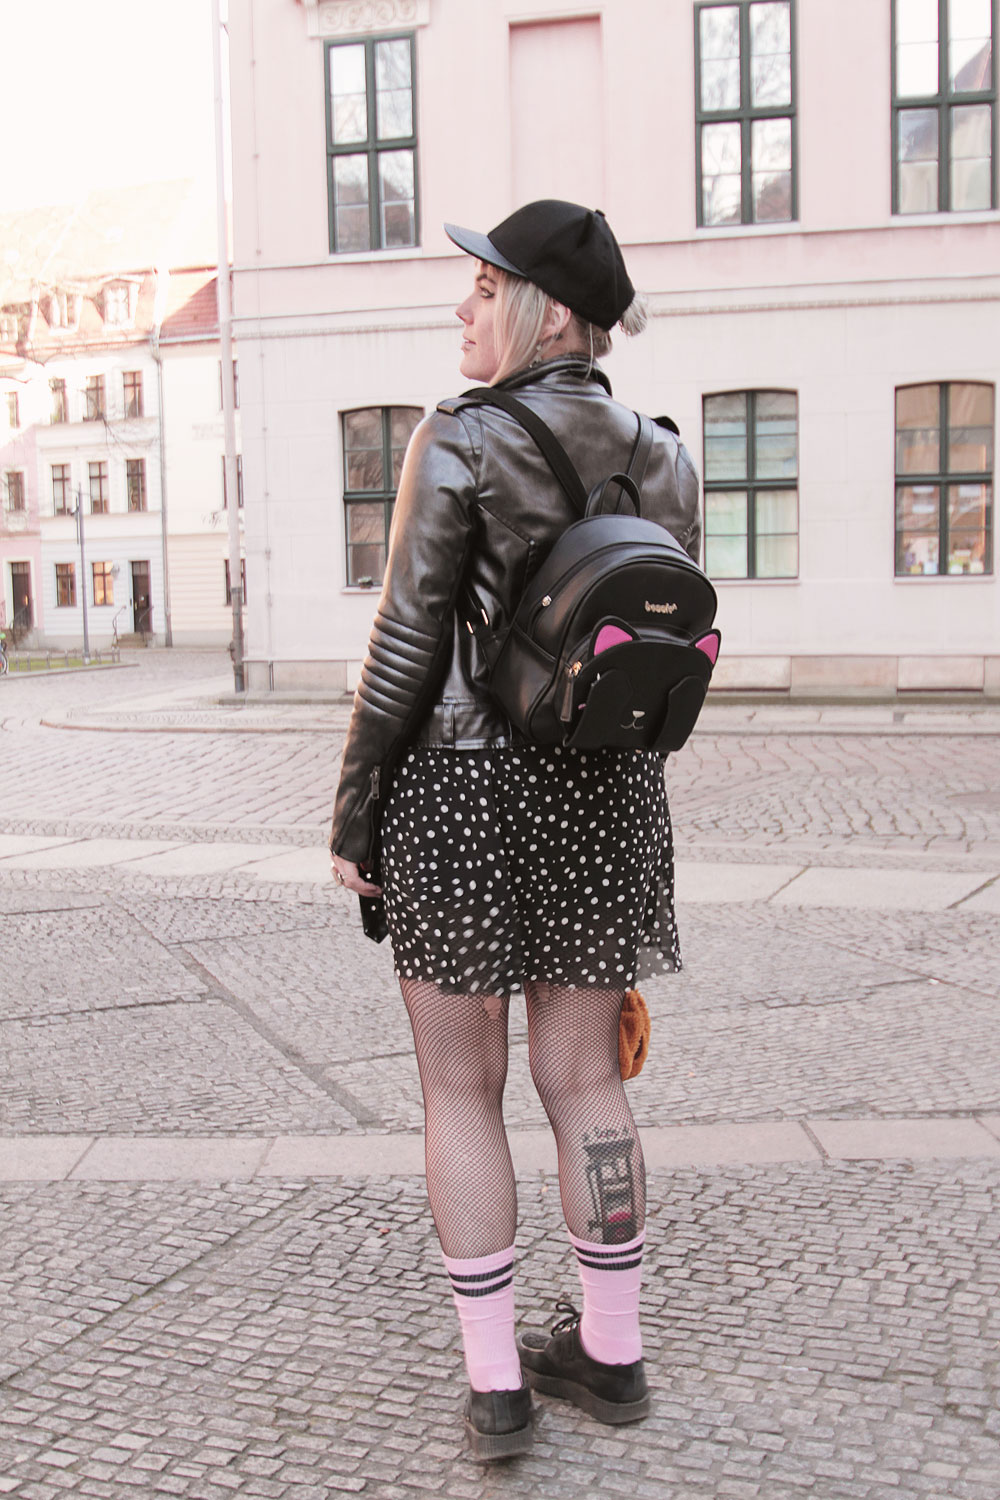 galaxy, pokemon, team rocket, mauzi, rosa, pink, evoli, creepers, katze, miau, katzenmütze, h&m, hype, rimark, rock, punkte, metallic, metalliclook, lederjacke, bikerjacke, rucksack, katzenrucksack, sportsocken, sportlich, alternative, alternative fashion, alternative girl, alternative mode, altgirl, berlin, berlin fashion, berlin fashion blogger, berlin mode, berlin streetstyle, blogger, fashion blogger, girls with piercings, girls with tattoos, grunge, grunge fashion, grunge mode, mode, Punk, punk fashion, punk mode, punkgirl, punkmädchen, scenehair, snakebites, split hair, splithair, tattoomädchen, tattoomodel